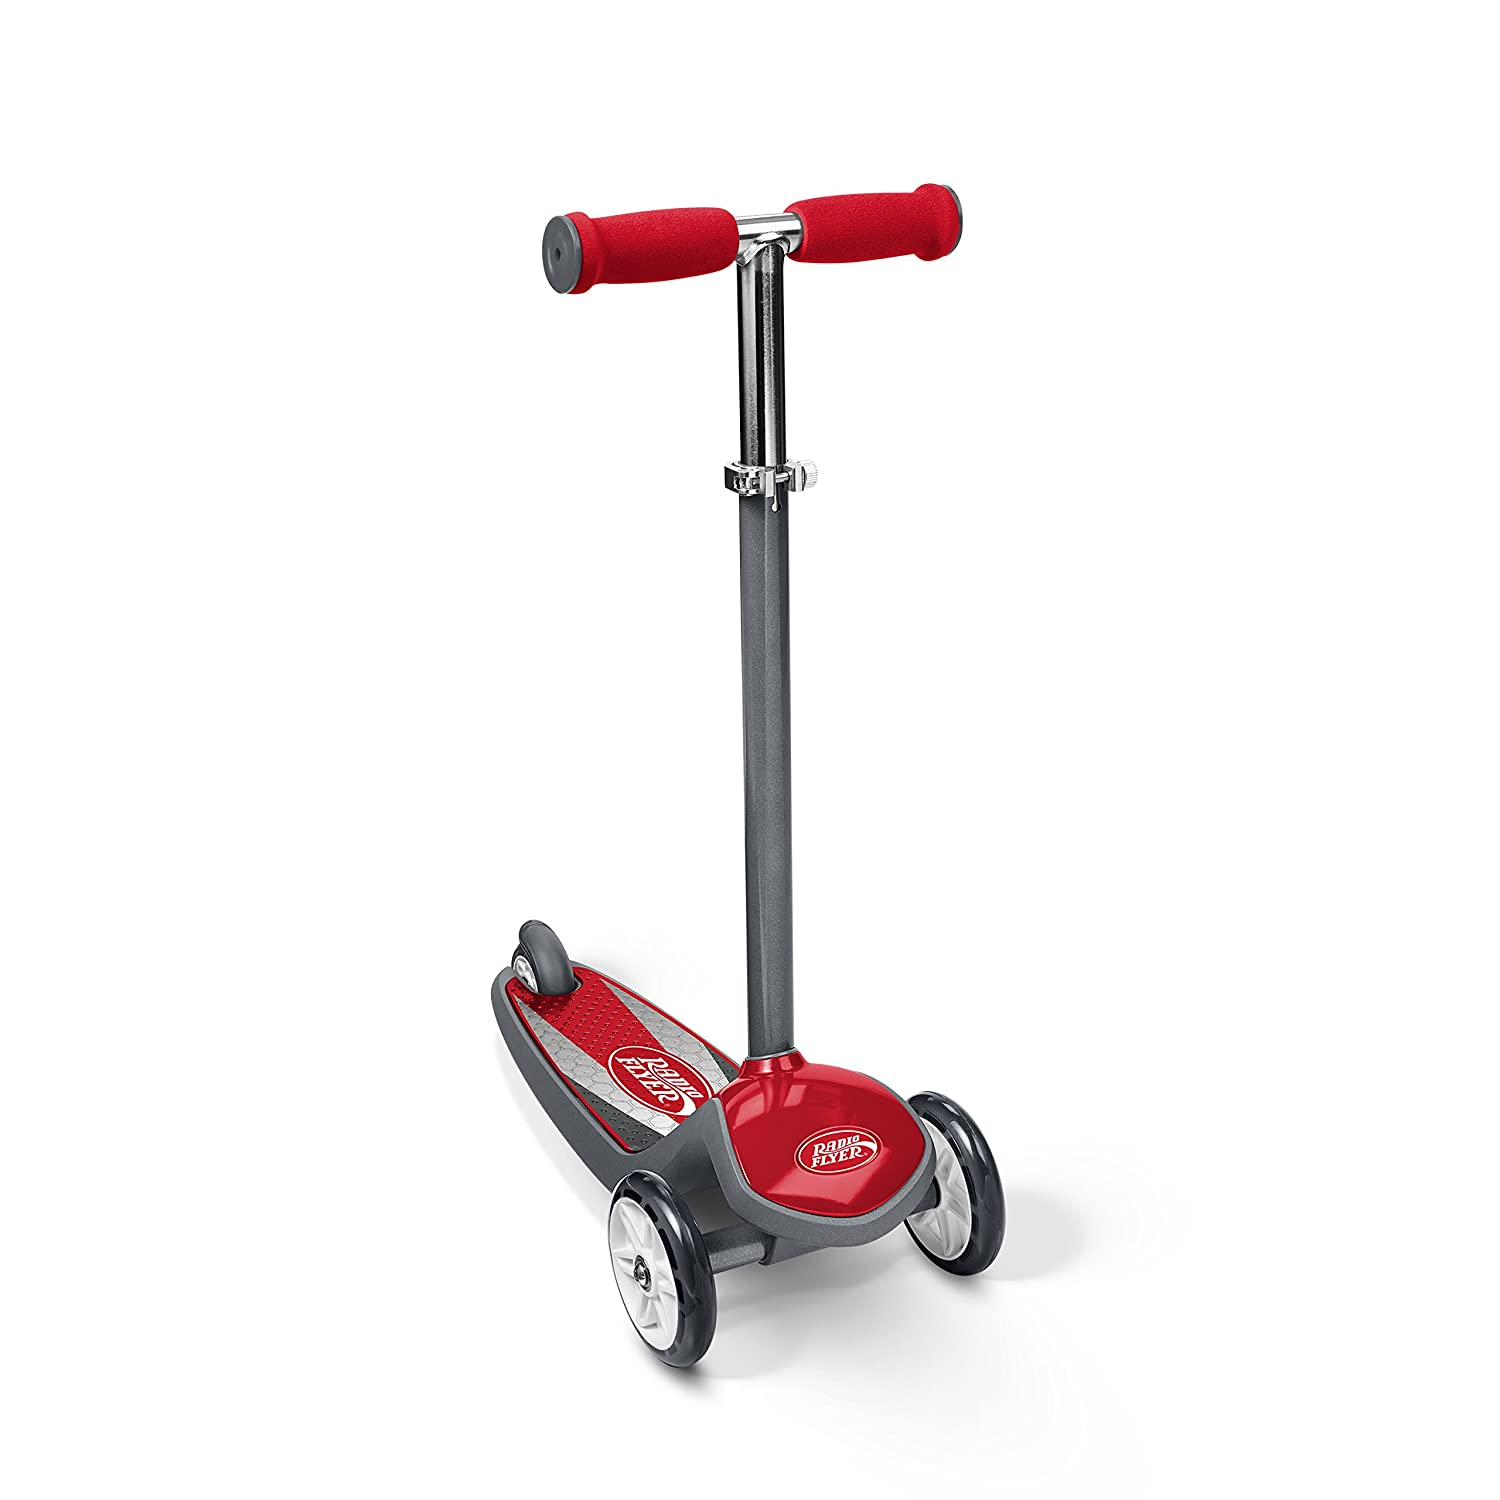 Radio Flyer 3 Wheel Scooter, Red